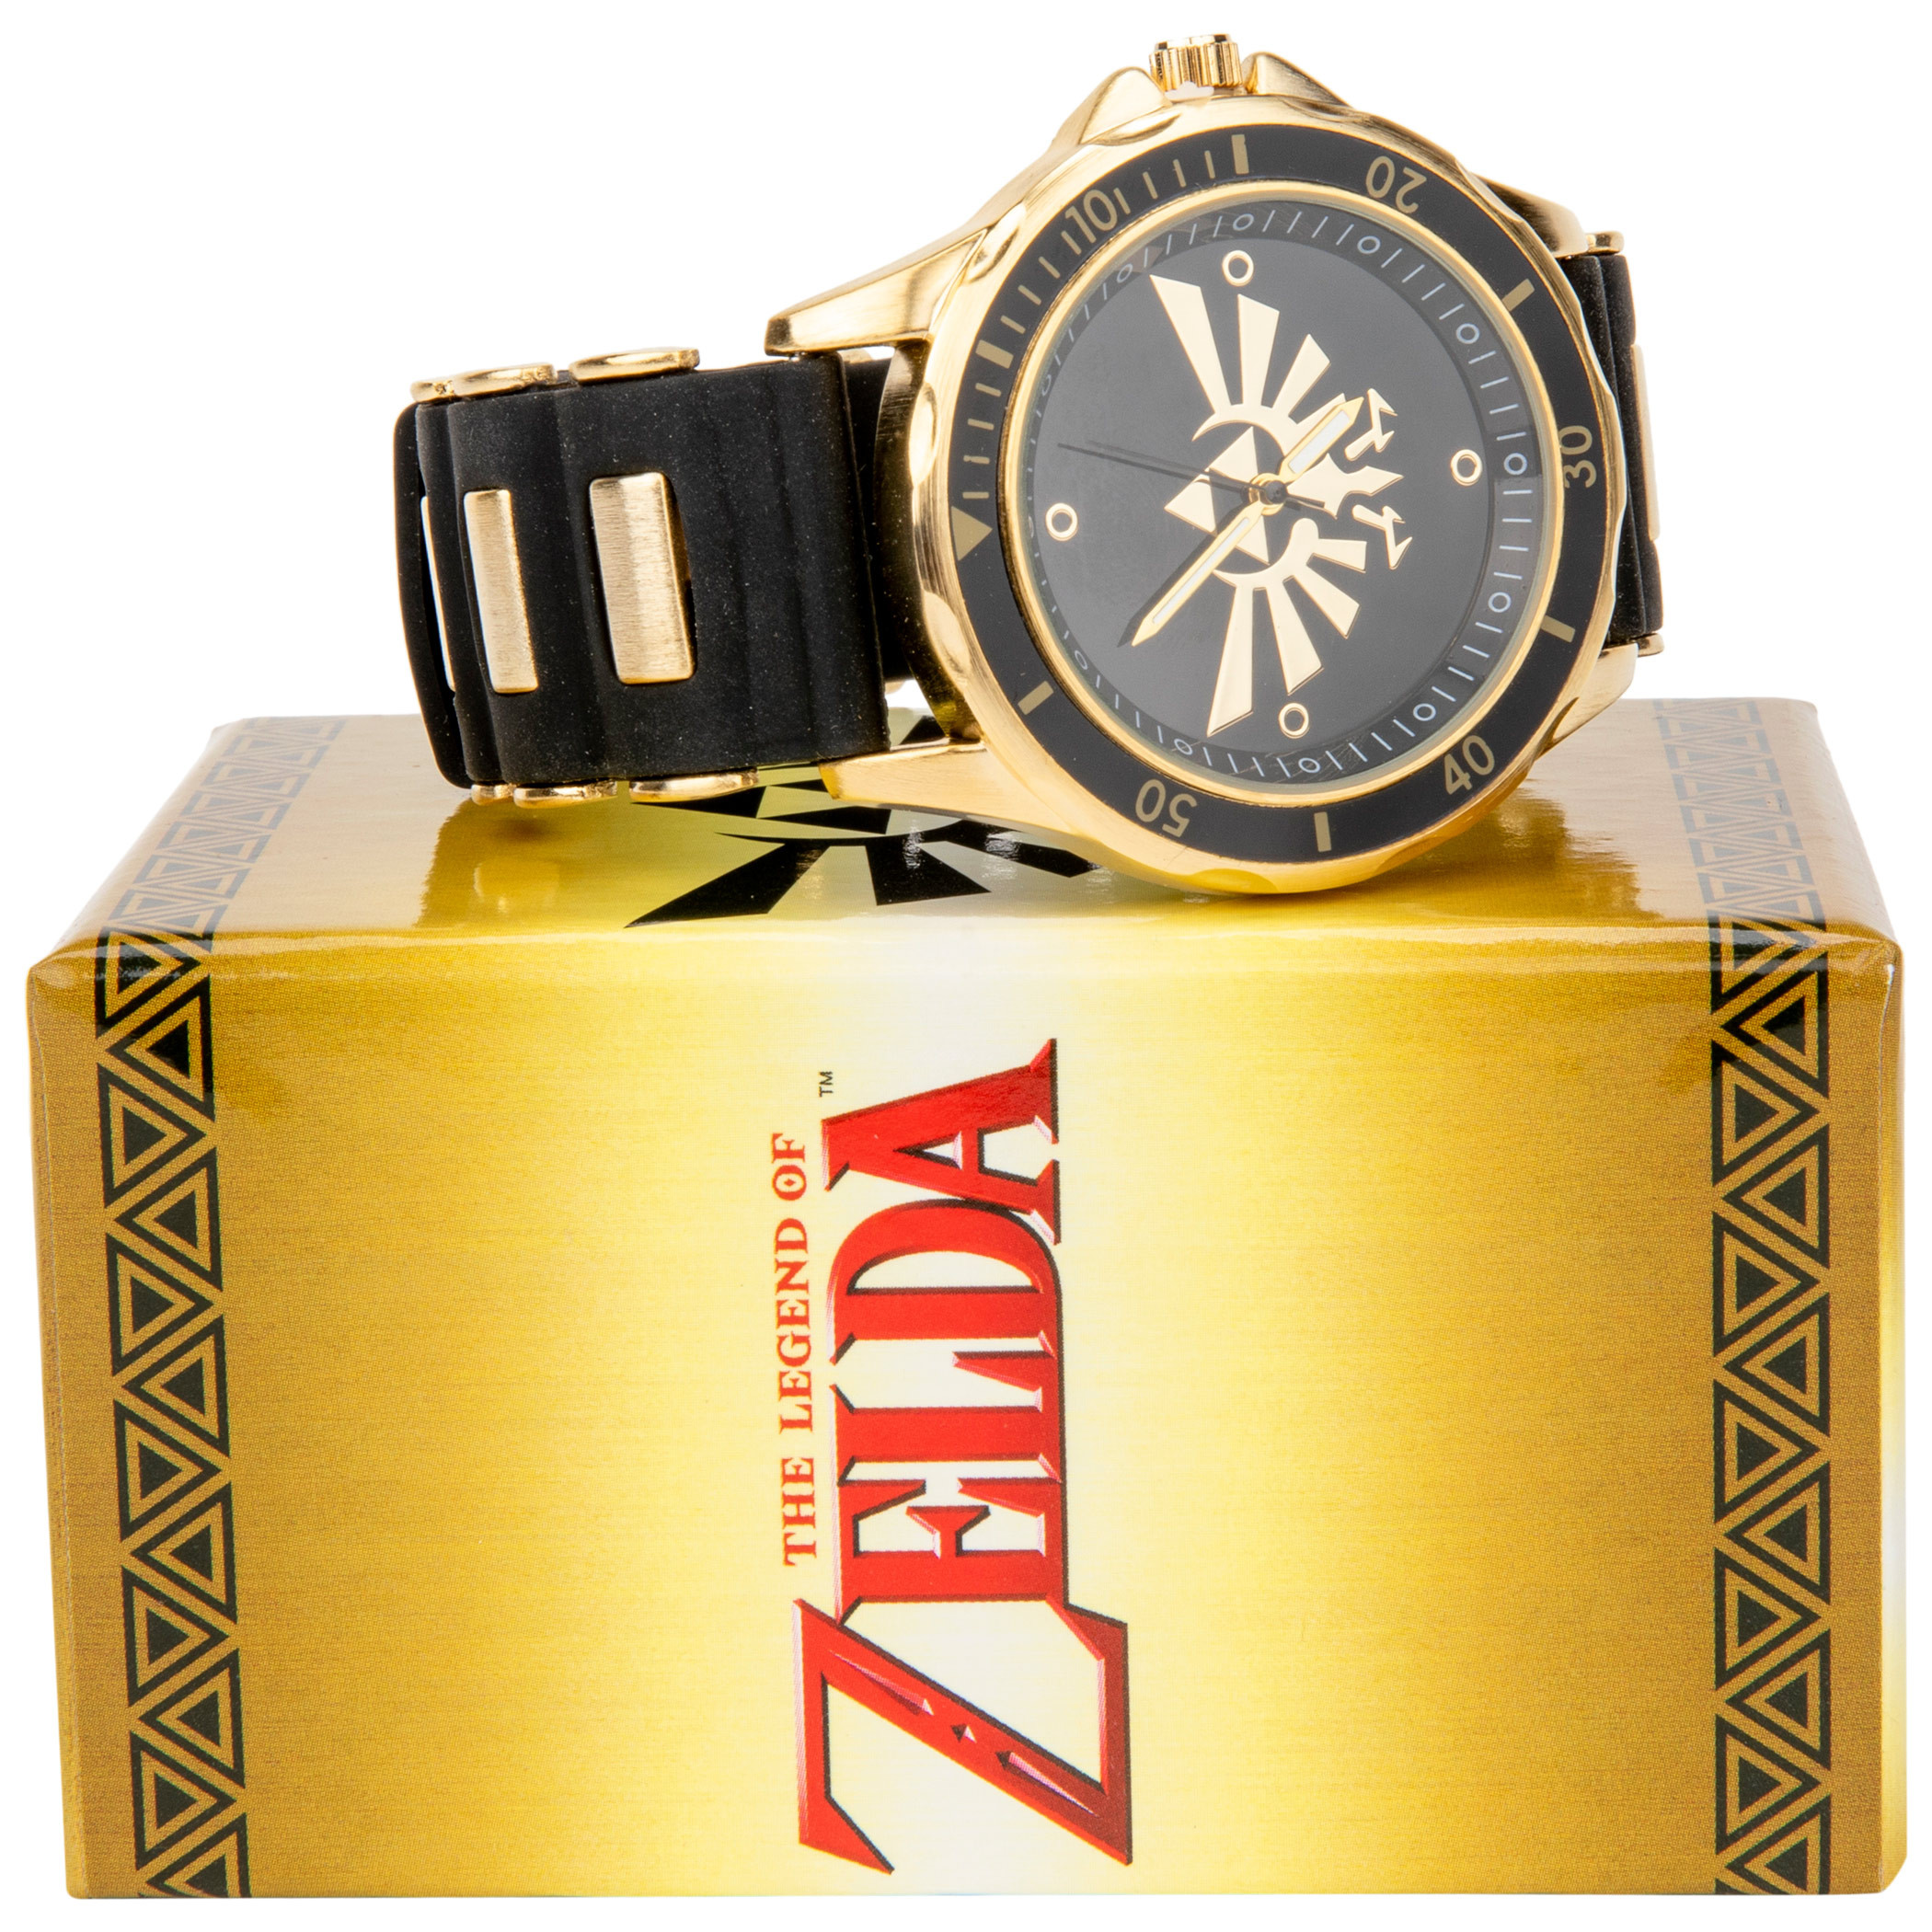 Zelda Triforce Watch with Rubber Band